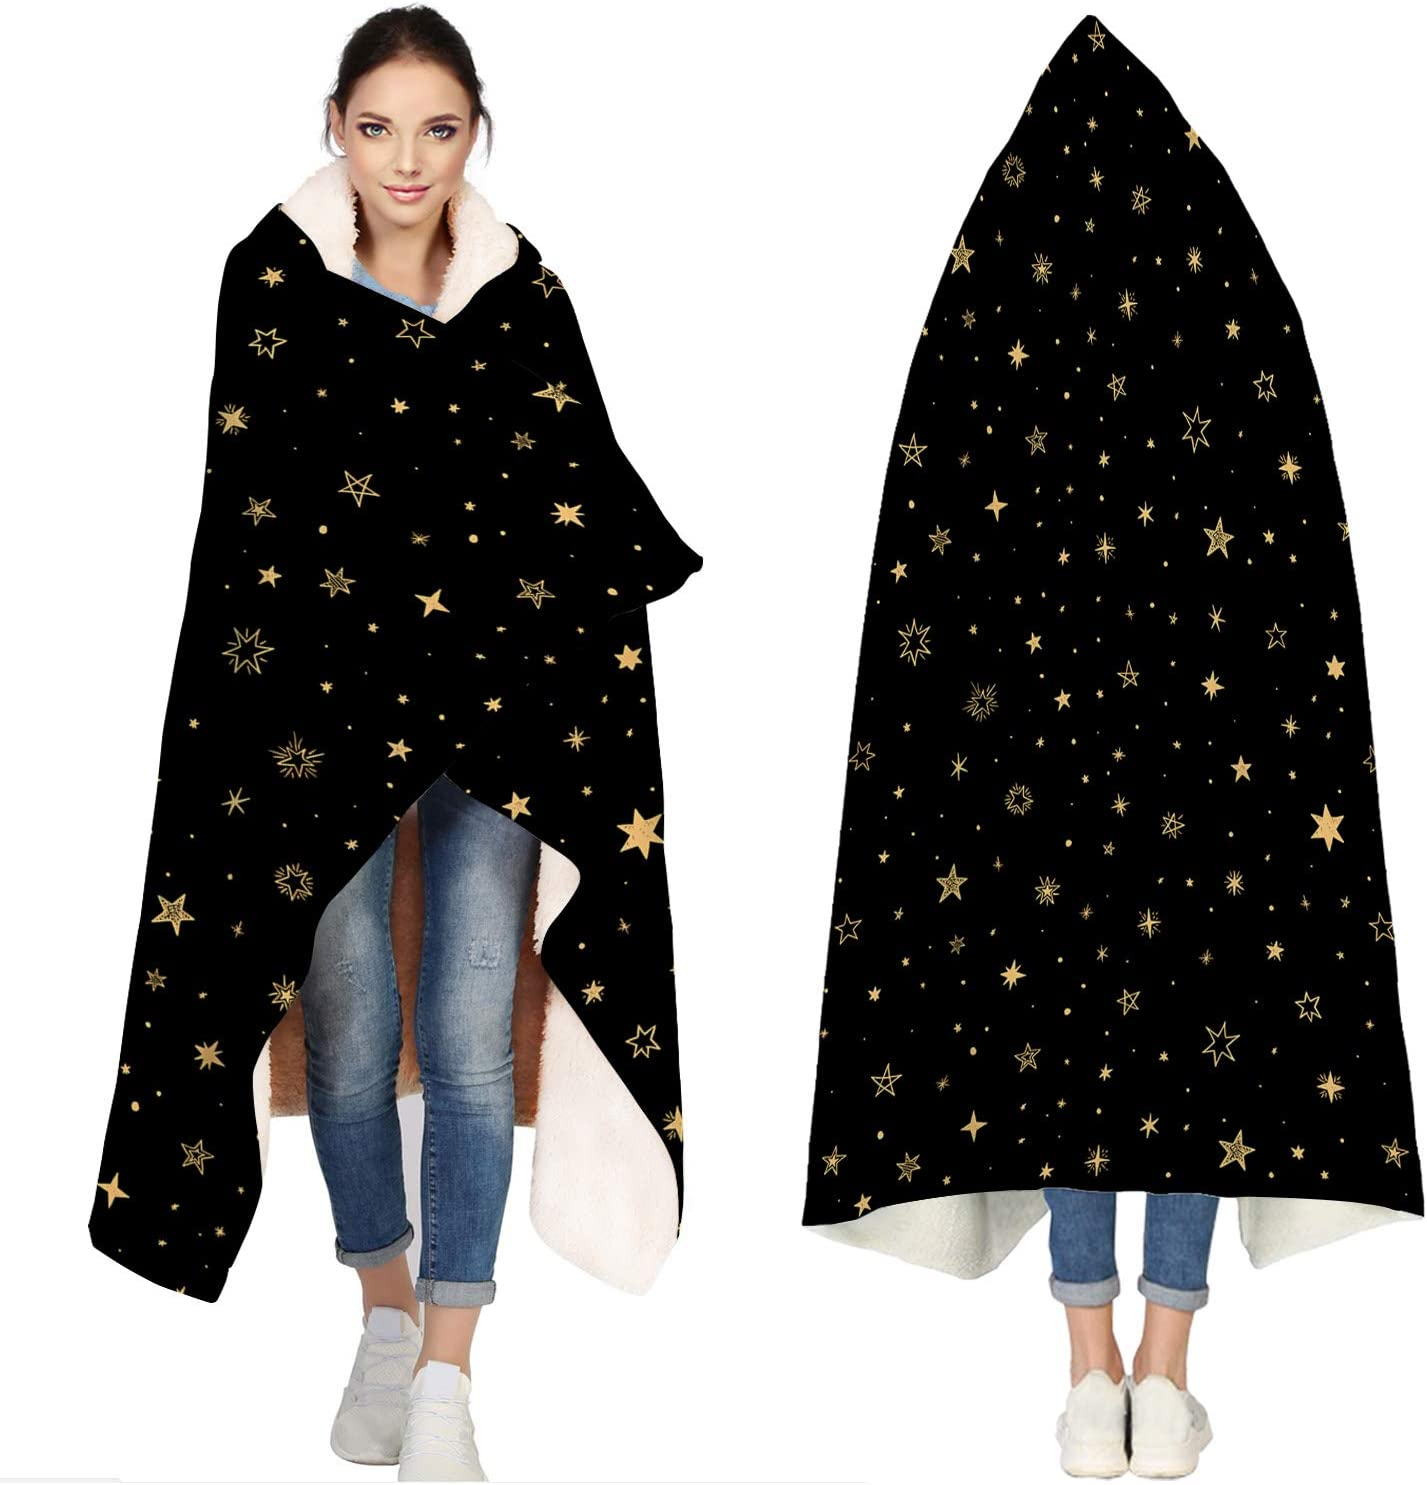 Seven Roses Hooded Blankets for Adults National products Towel Sale special price Black Stars Bath -